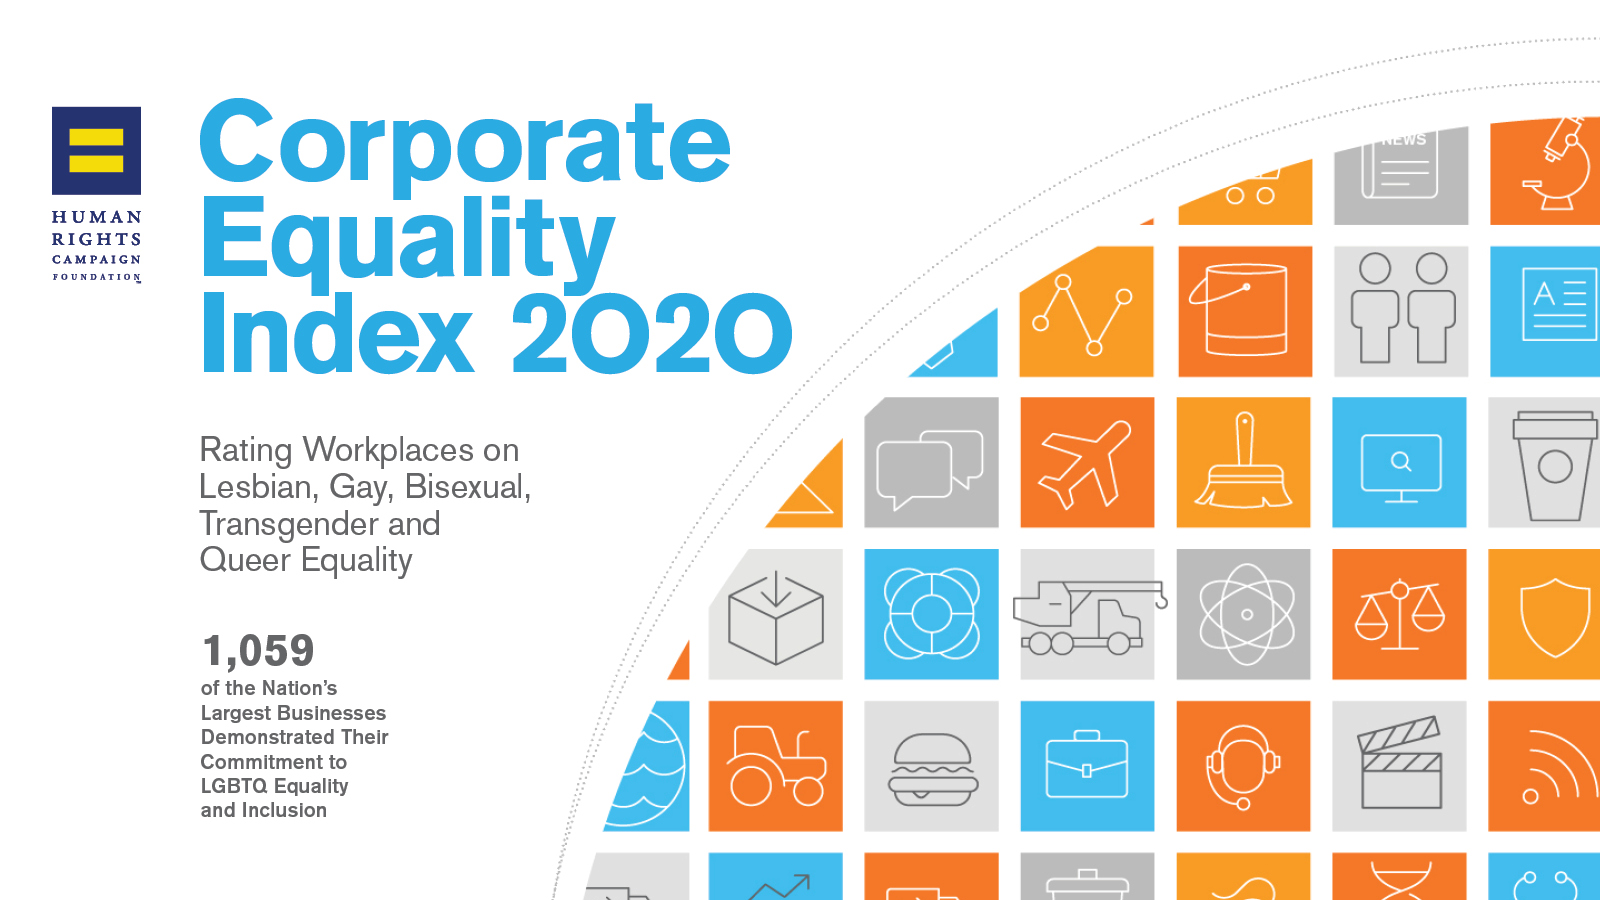 Giant Food Earns Top Marks in 2020 Corporate Equality Index